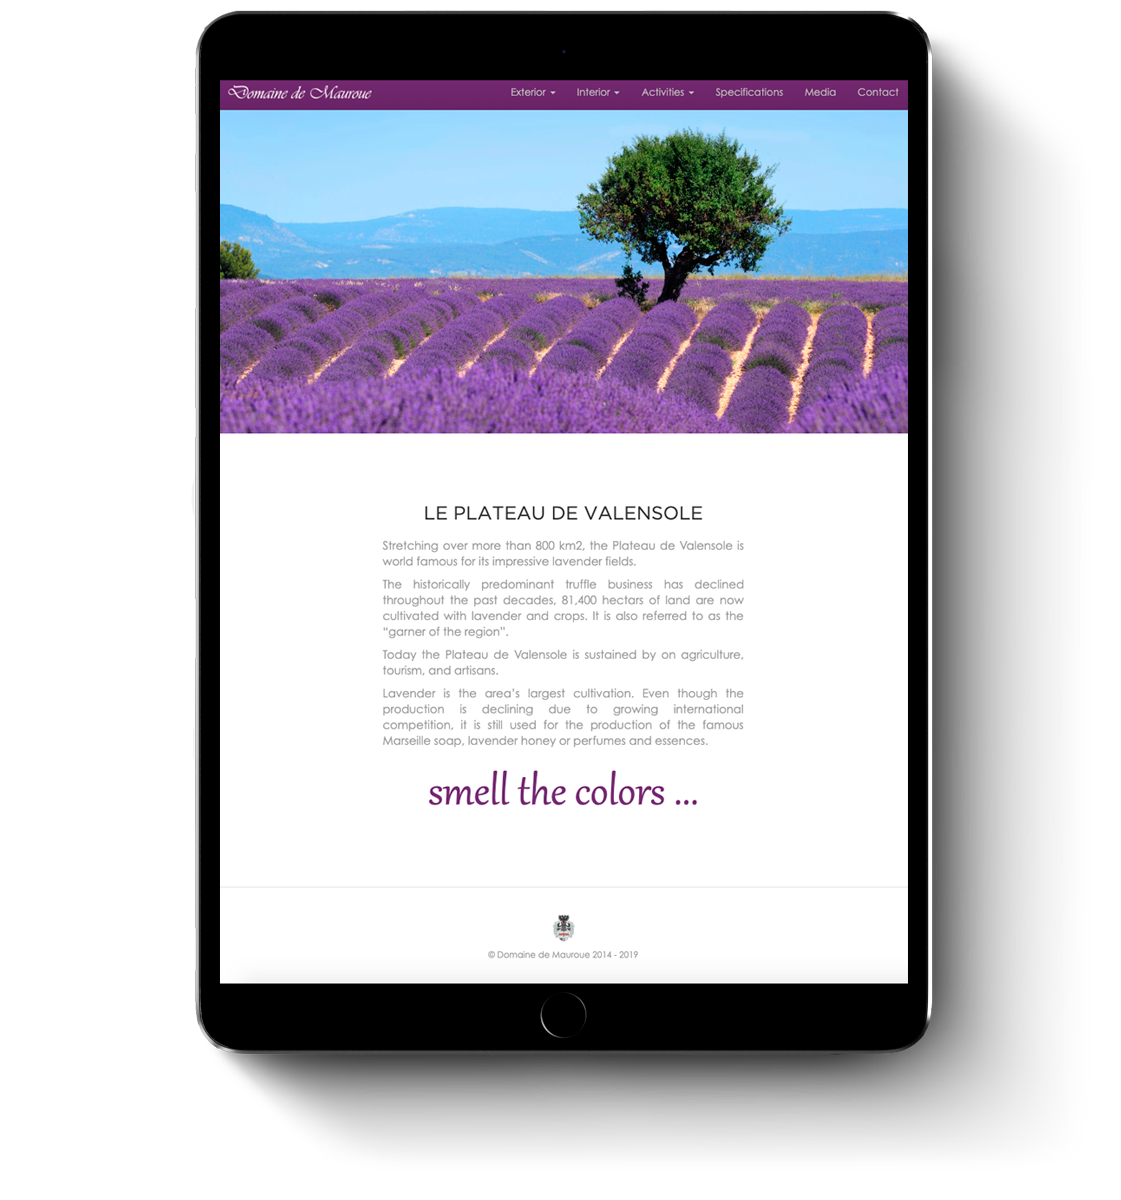 Domaine de Mauroue web design for mobile devices and tablets